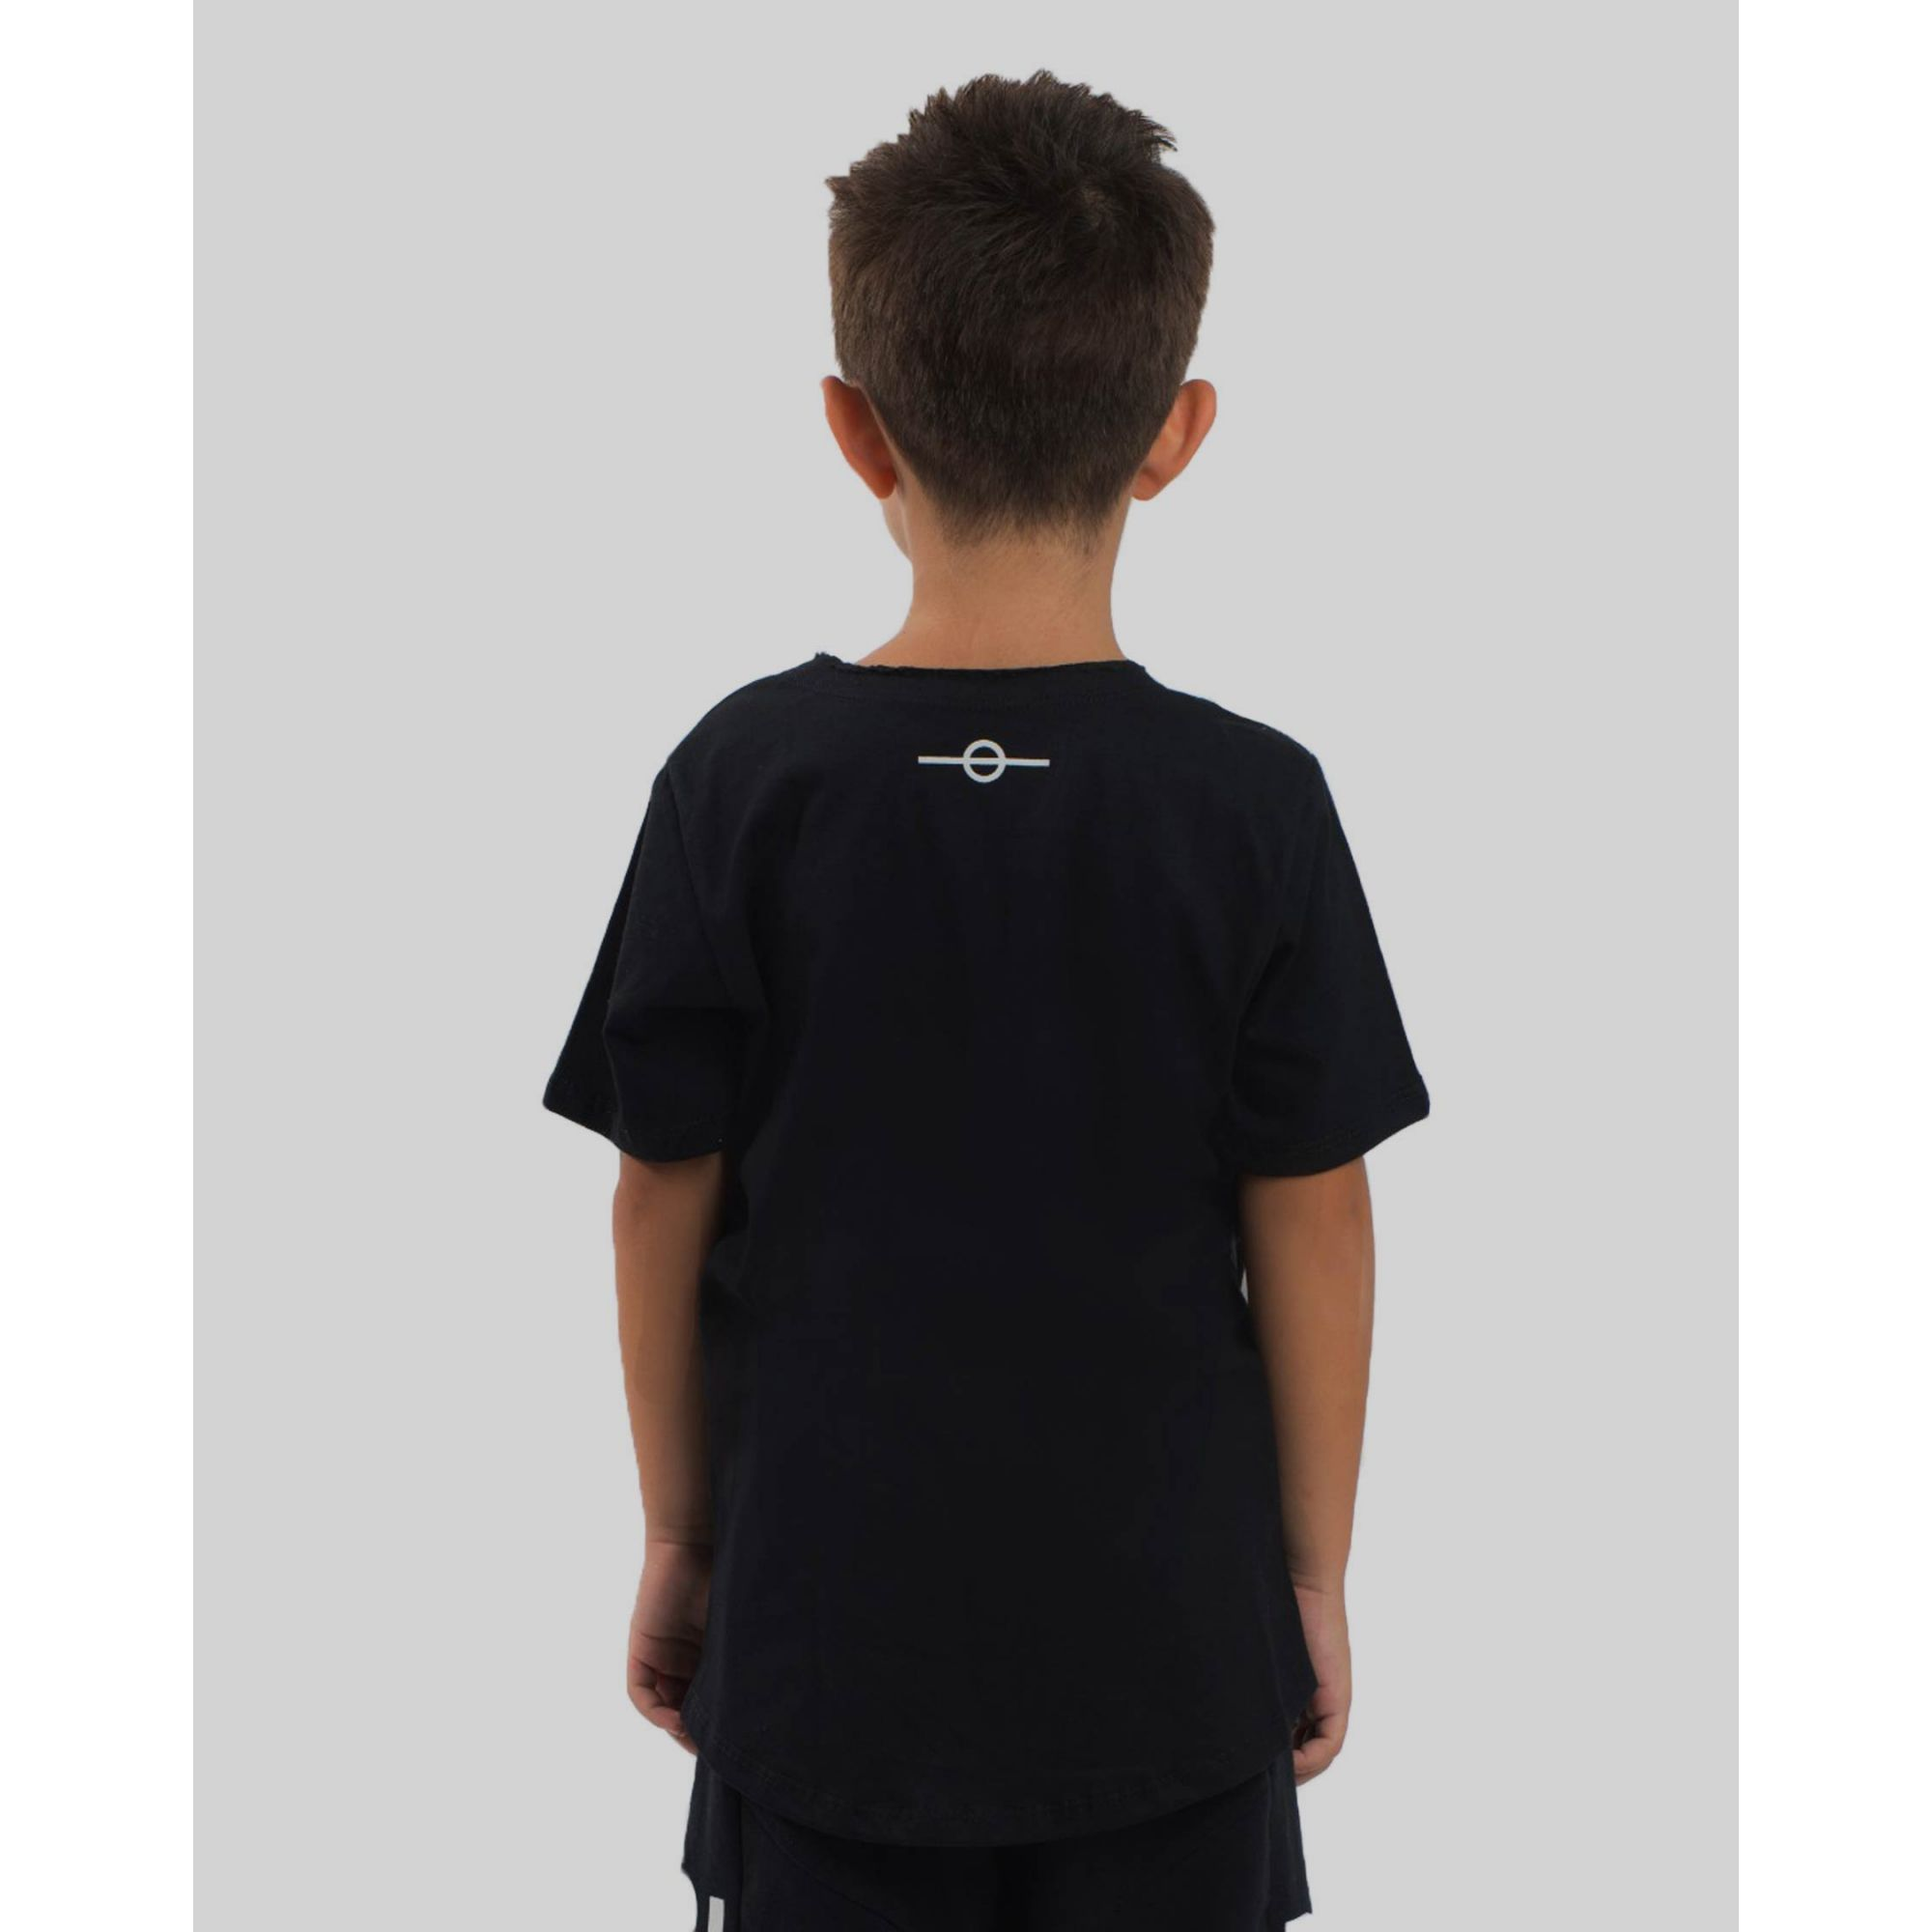 Camiseta Buh Kids Relevo Black